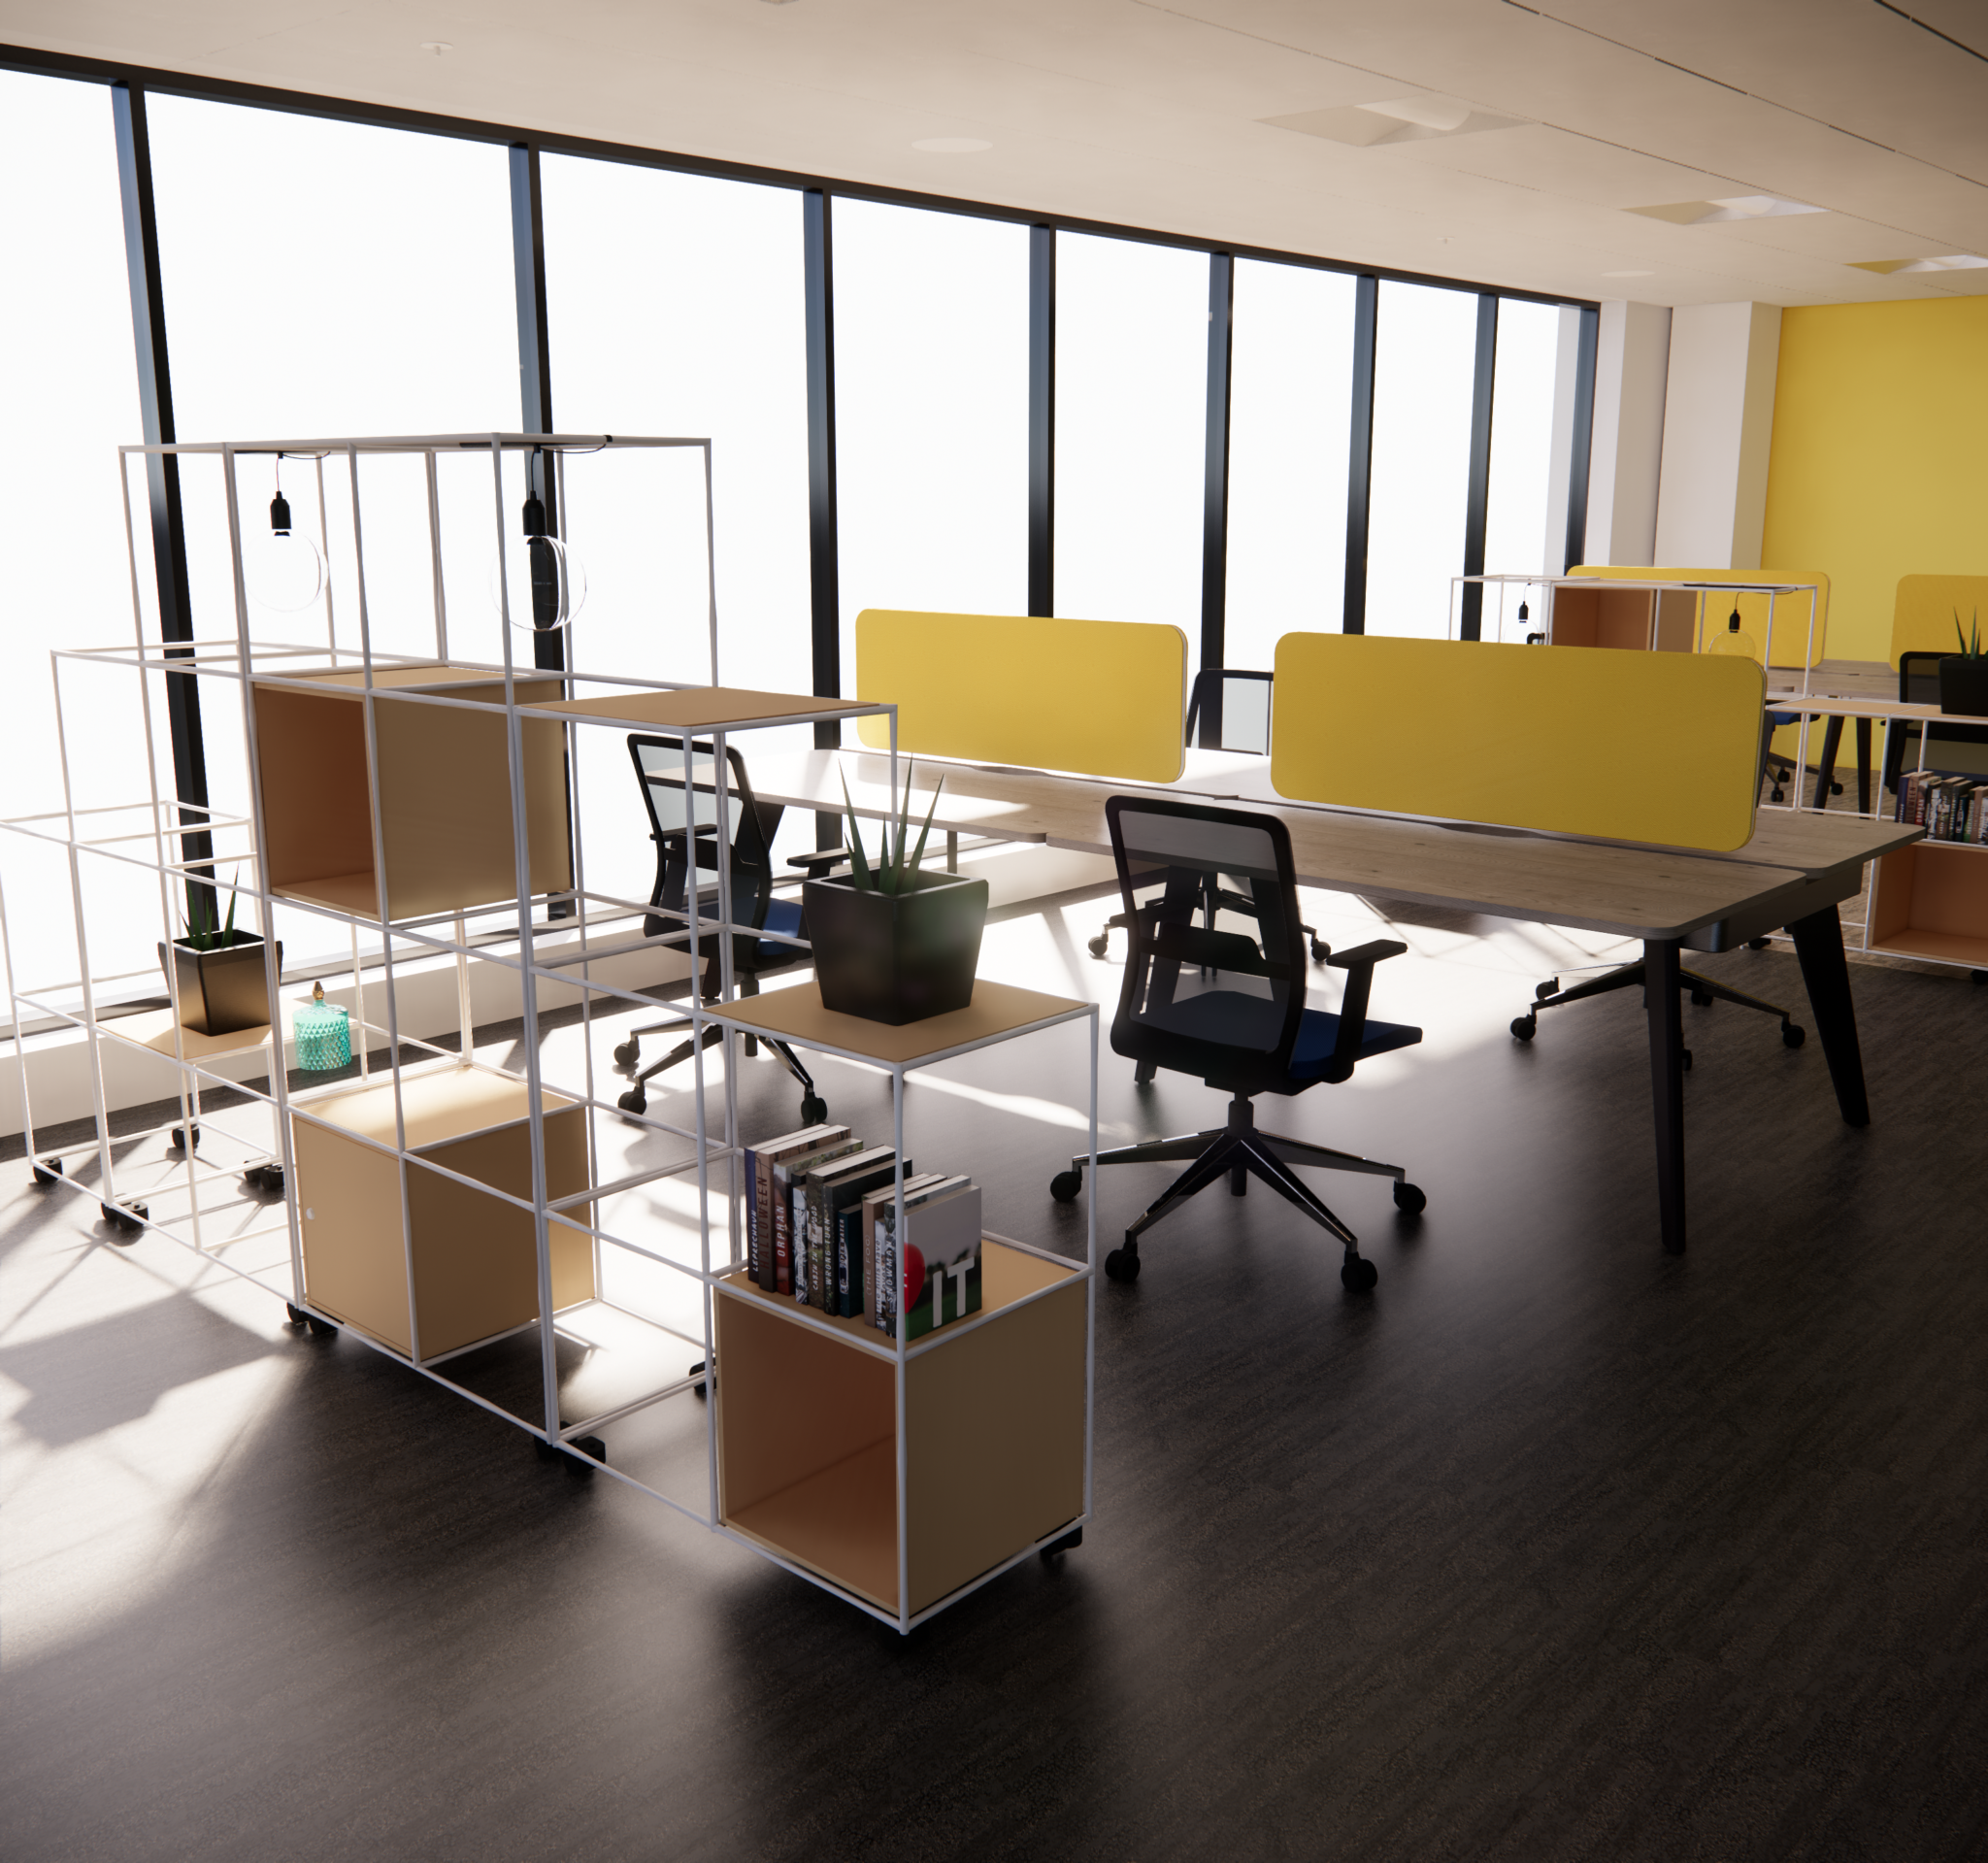 Does the evolution of the workplace mean more open or more private?